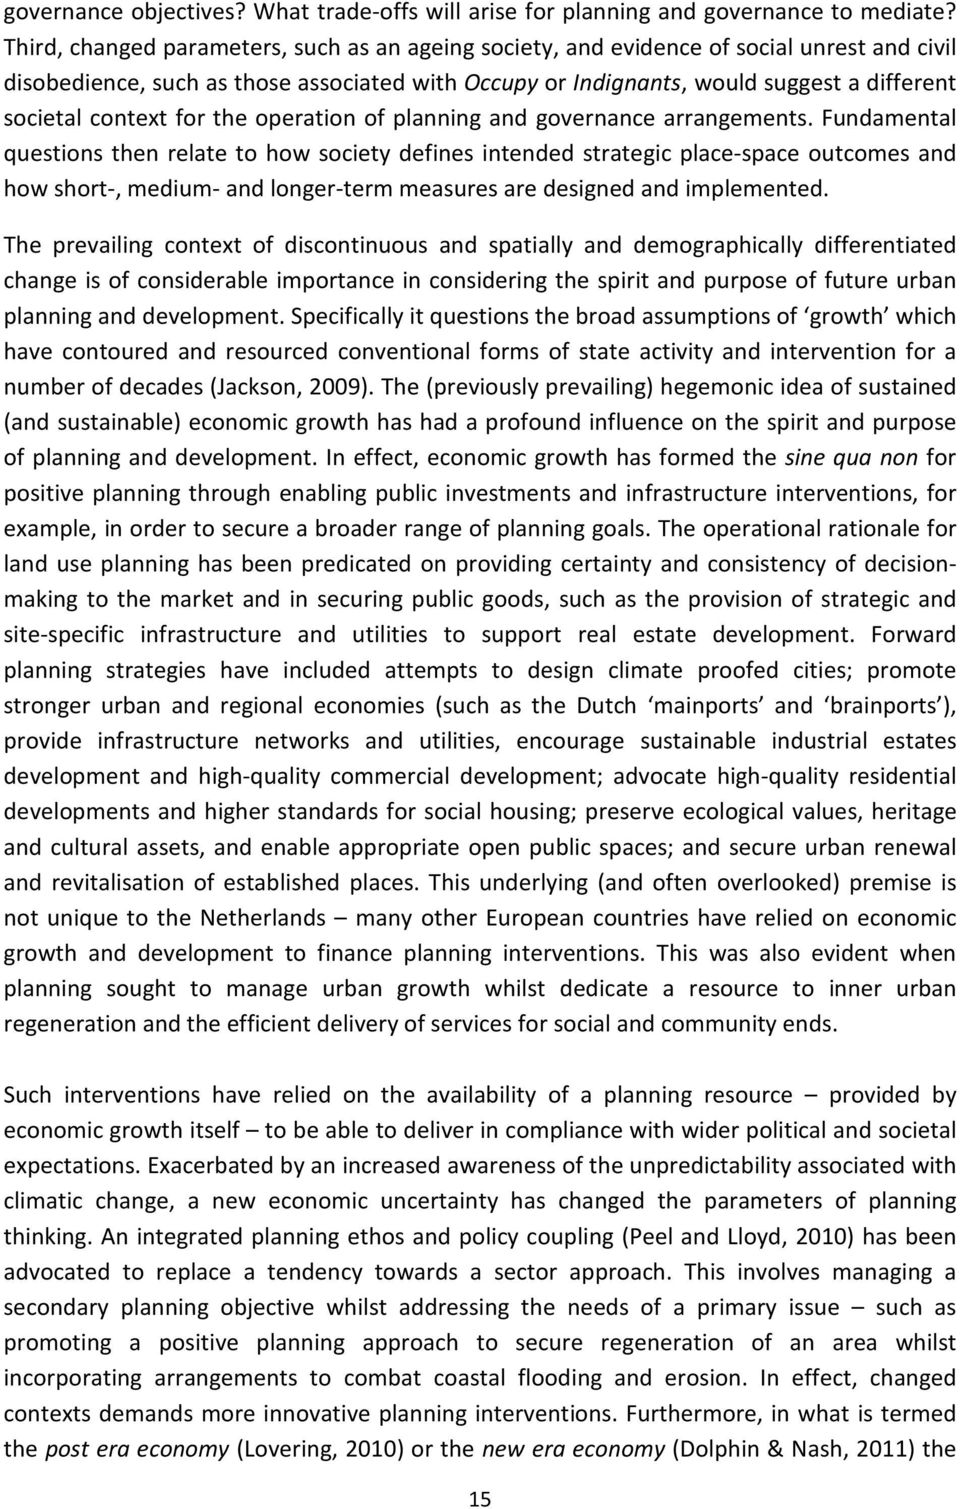 context for the operation of planning and governance arrangements.